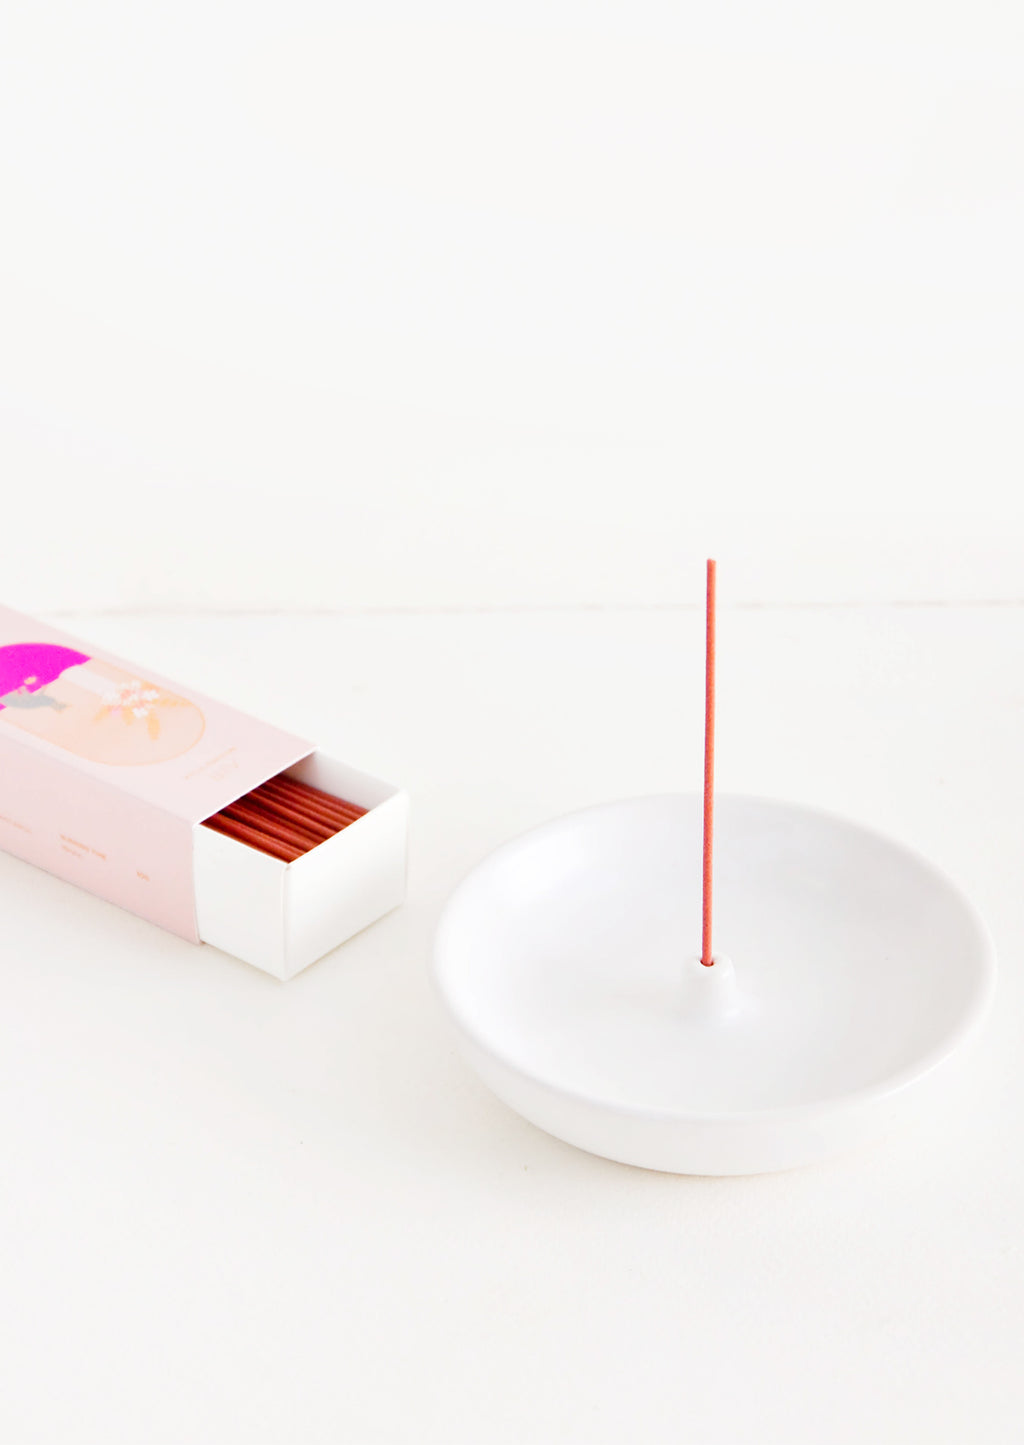 1: A simple white curved ceramic incense holder with a pink stick of incense and a pink box of incense next to it.